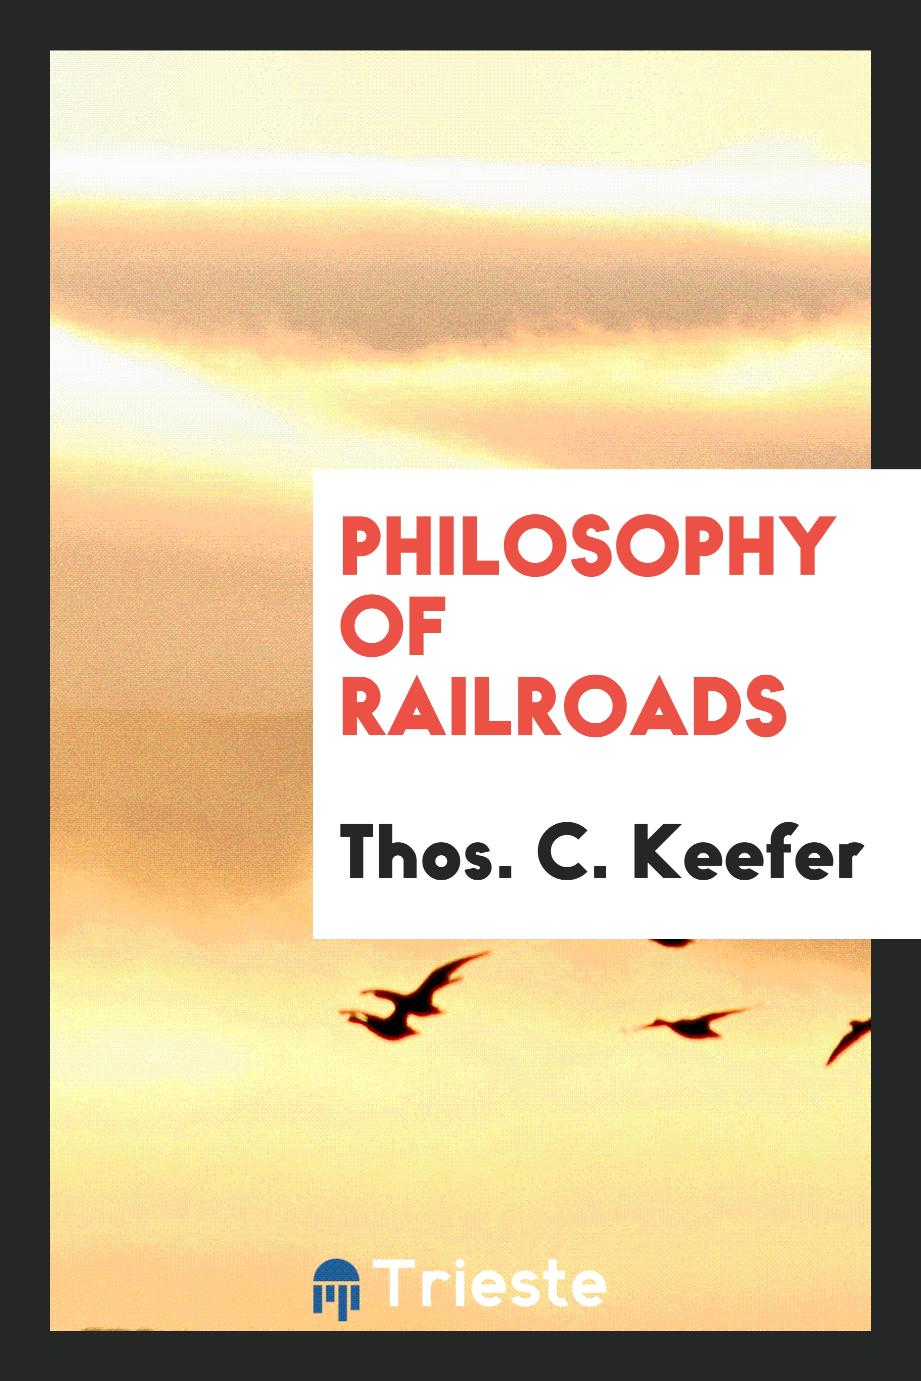 Philosophy of railroads